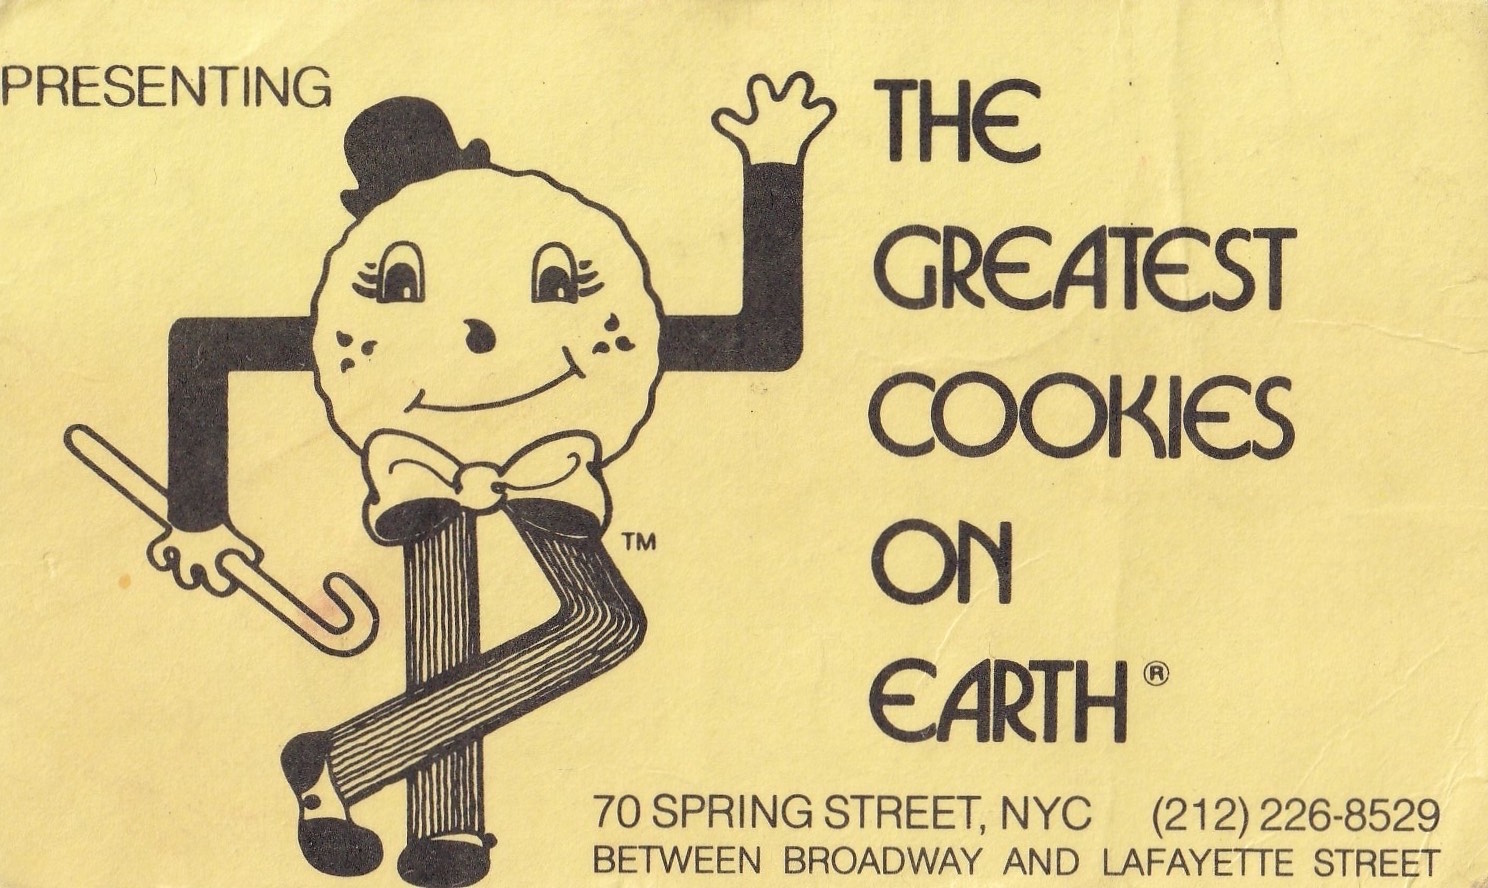 Greatest Cookies on Earth flyer